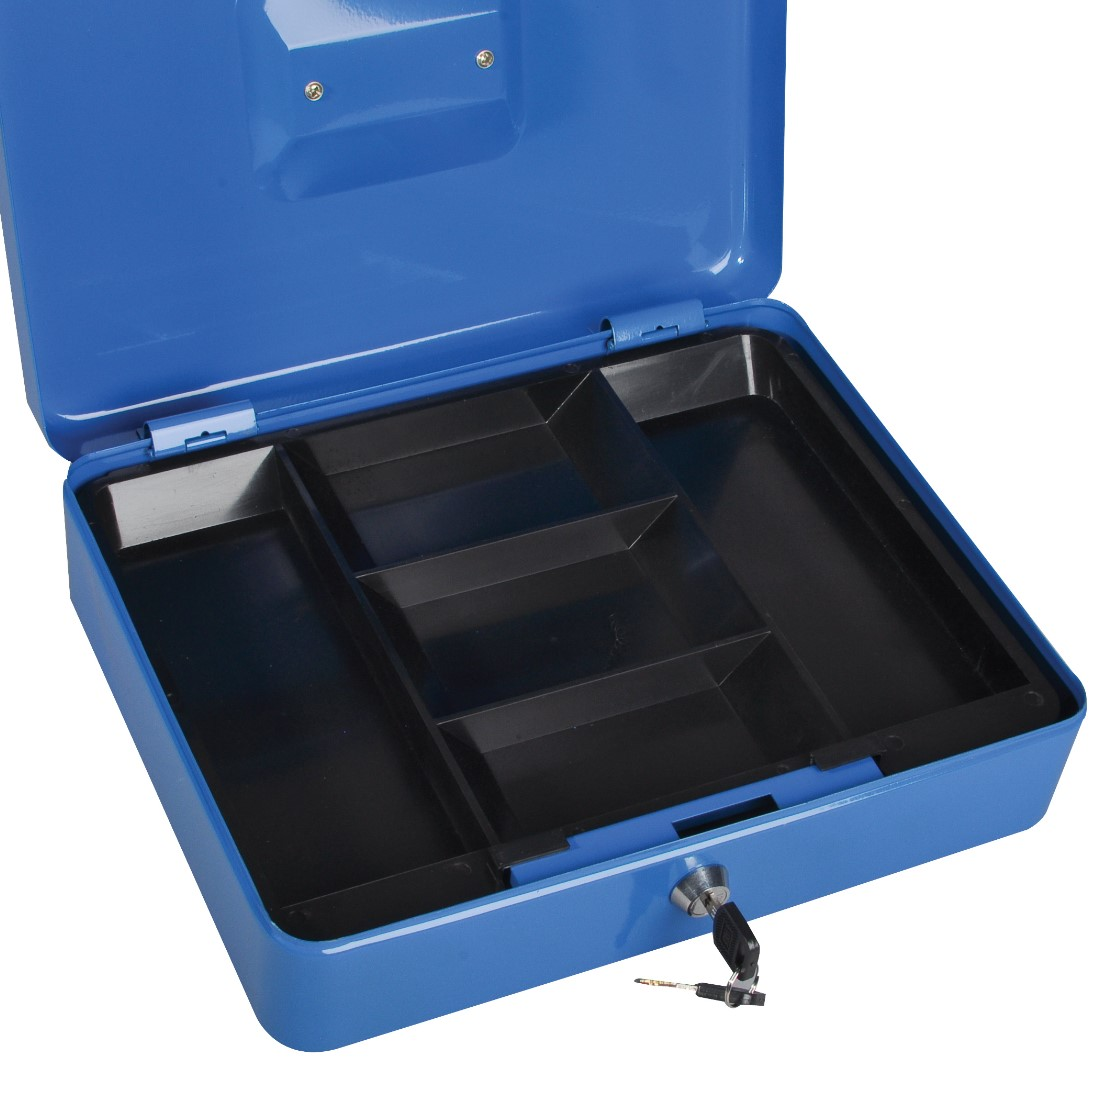 Outstanding Small Steel Cash Box With Money Tray Opus Cash Guard Pc 1 Cash Wiring Cloud Usnesfoxcilixyz